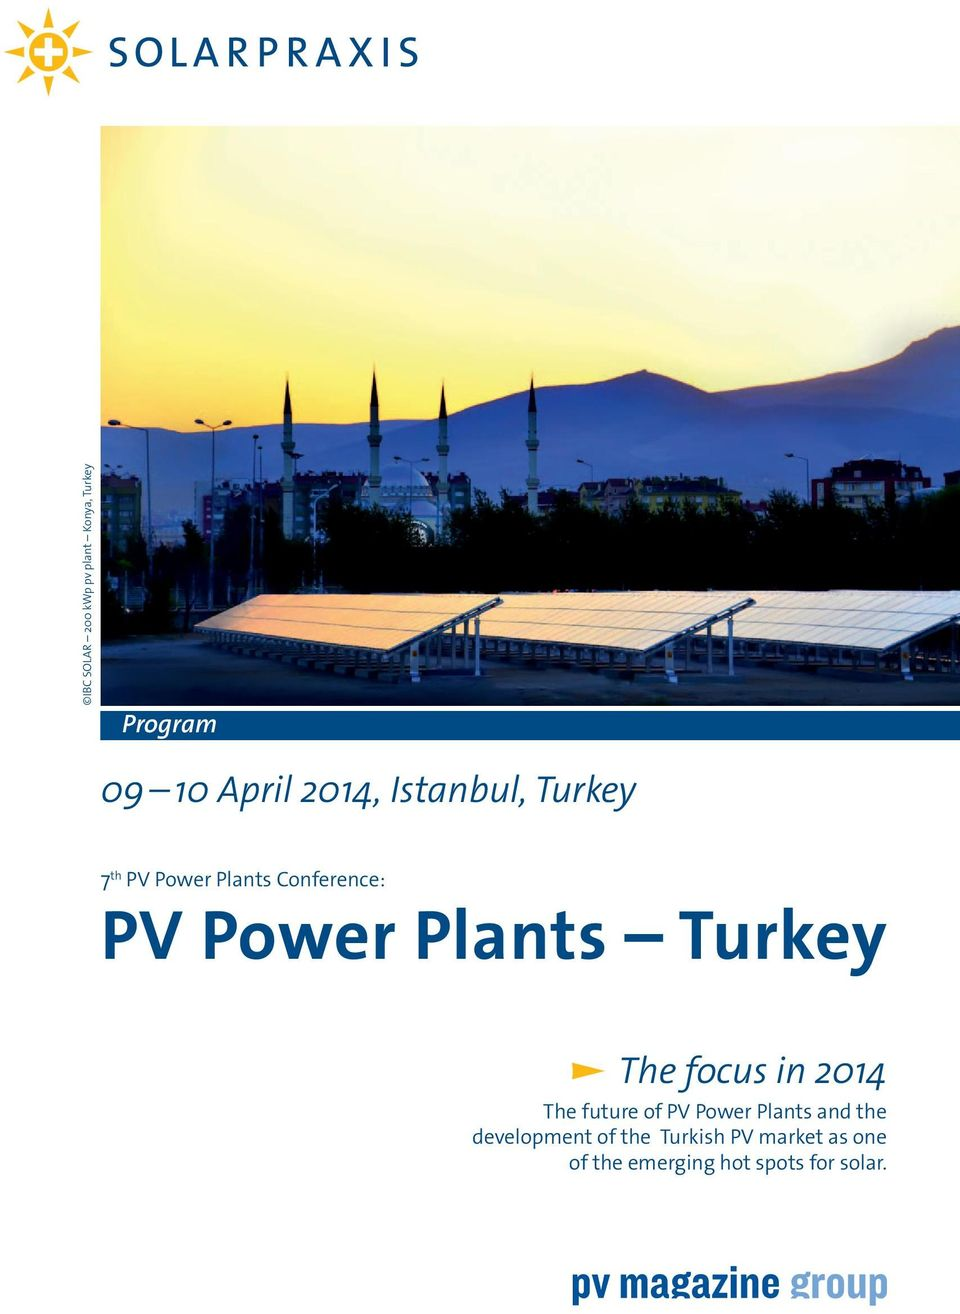 Plt Turky Th focu i 2014 Th futur of PV Powr Plt d th